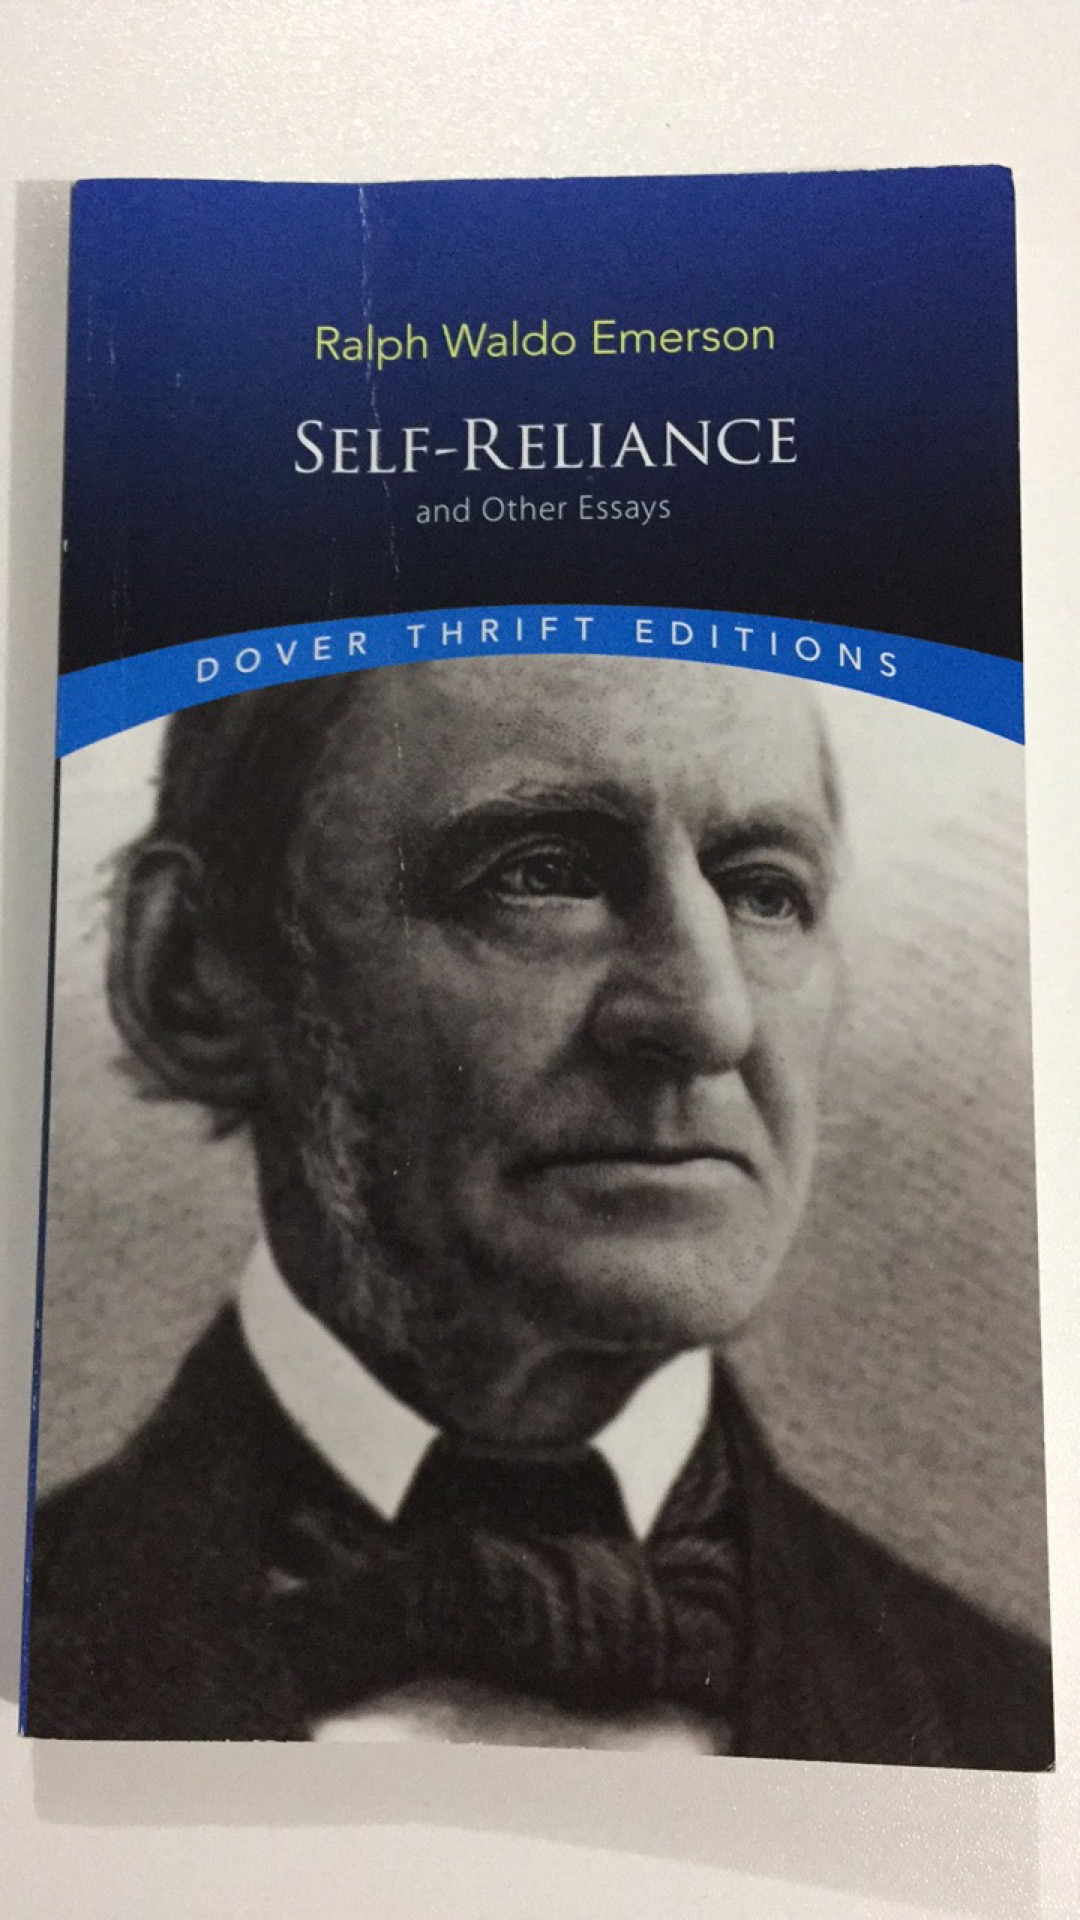 003 Self Reliance And Other Essays Essay Example By Ralph Waldo Emerson Formidable Pdf Ekşi Full